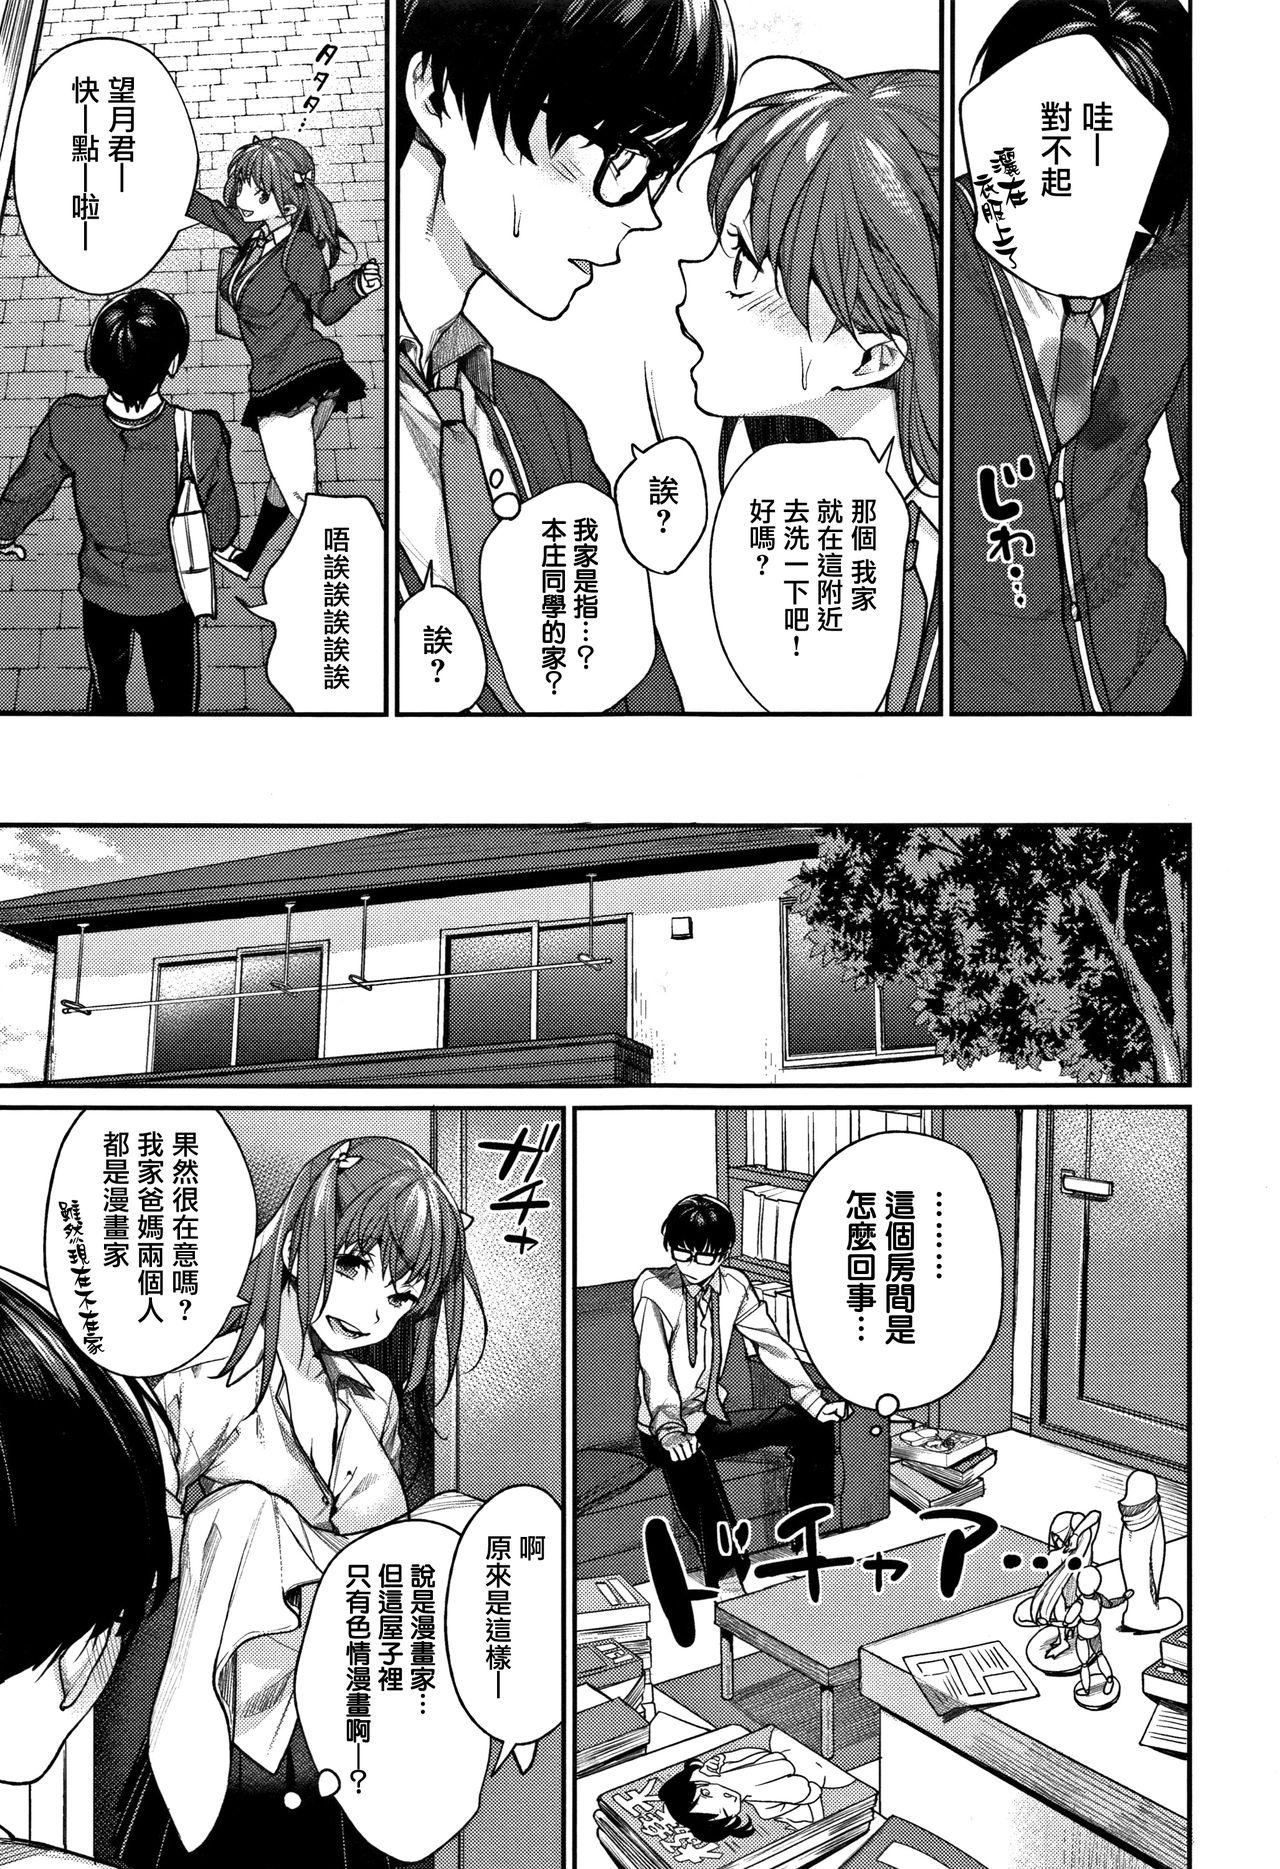 [MGMEE] Bokura no Etude - Our H Chu Do Ch.1-7 [Chinese] [無邪気漢化組] 8